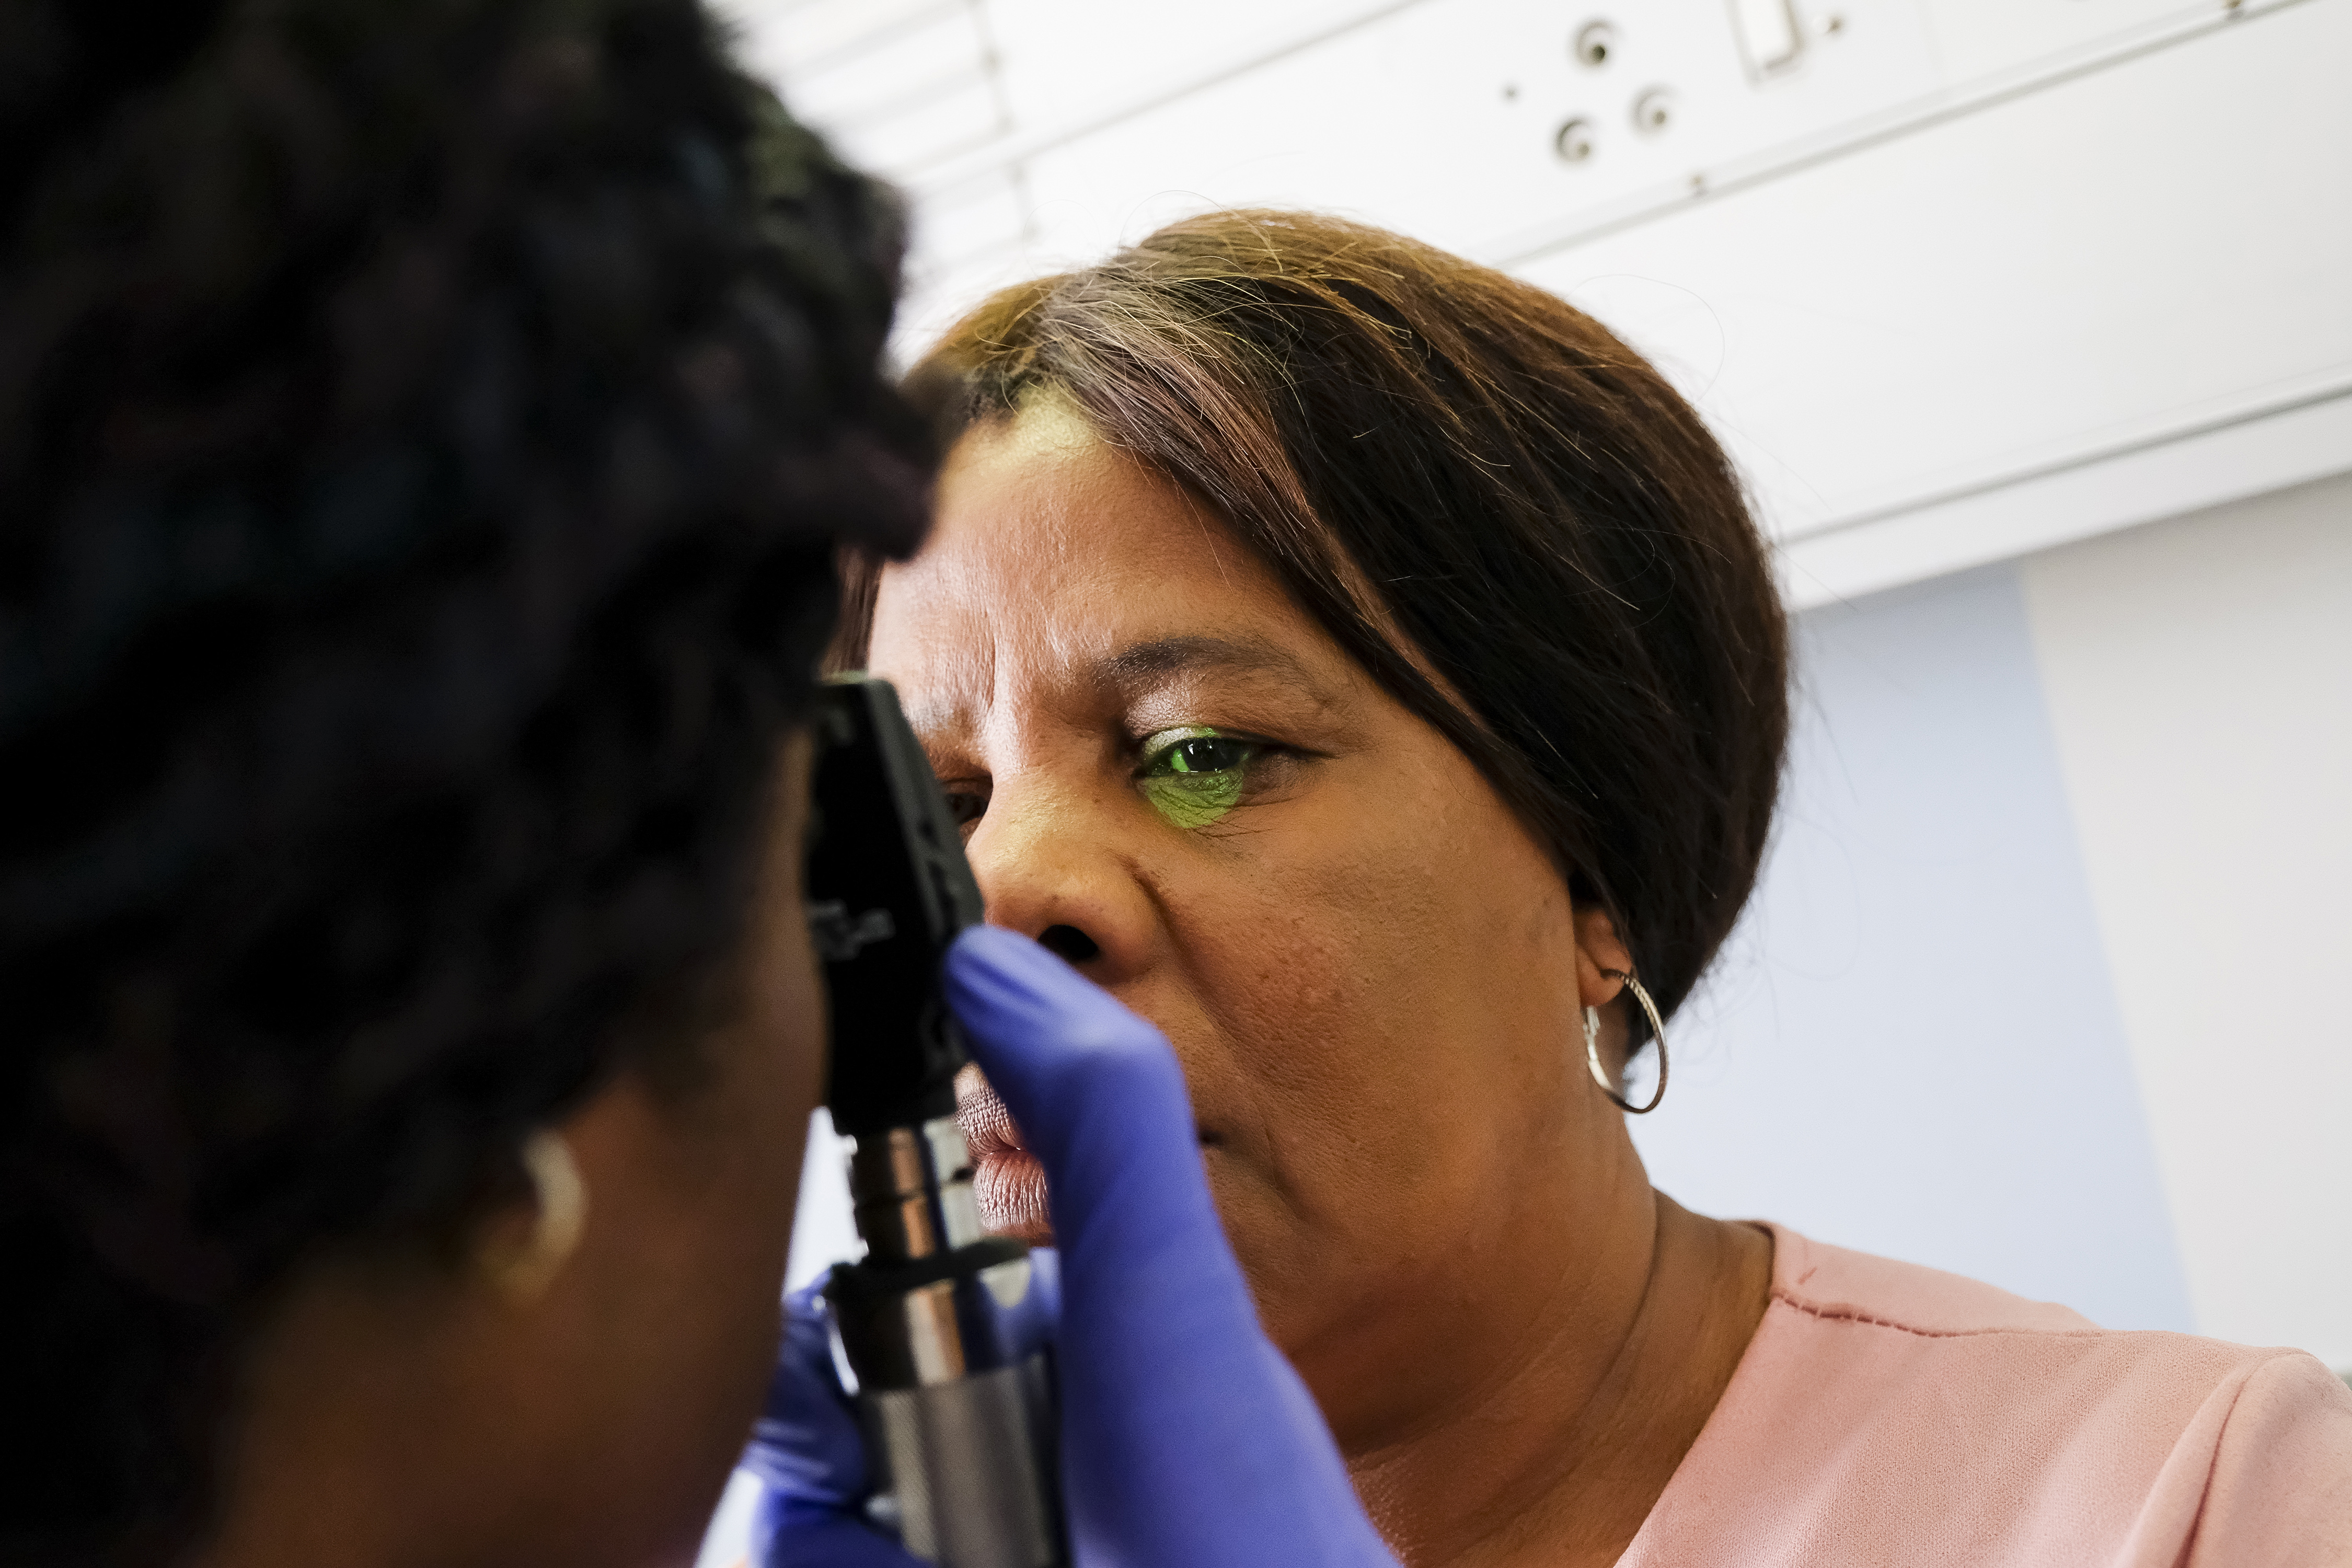 photo, woman receiving an eye exam